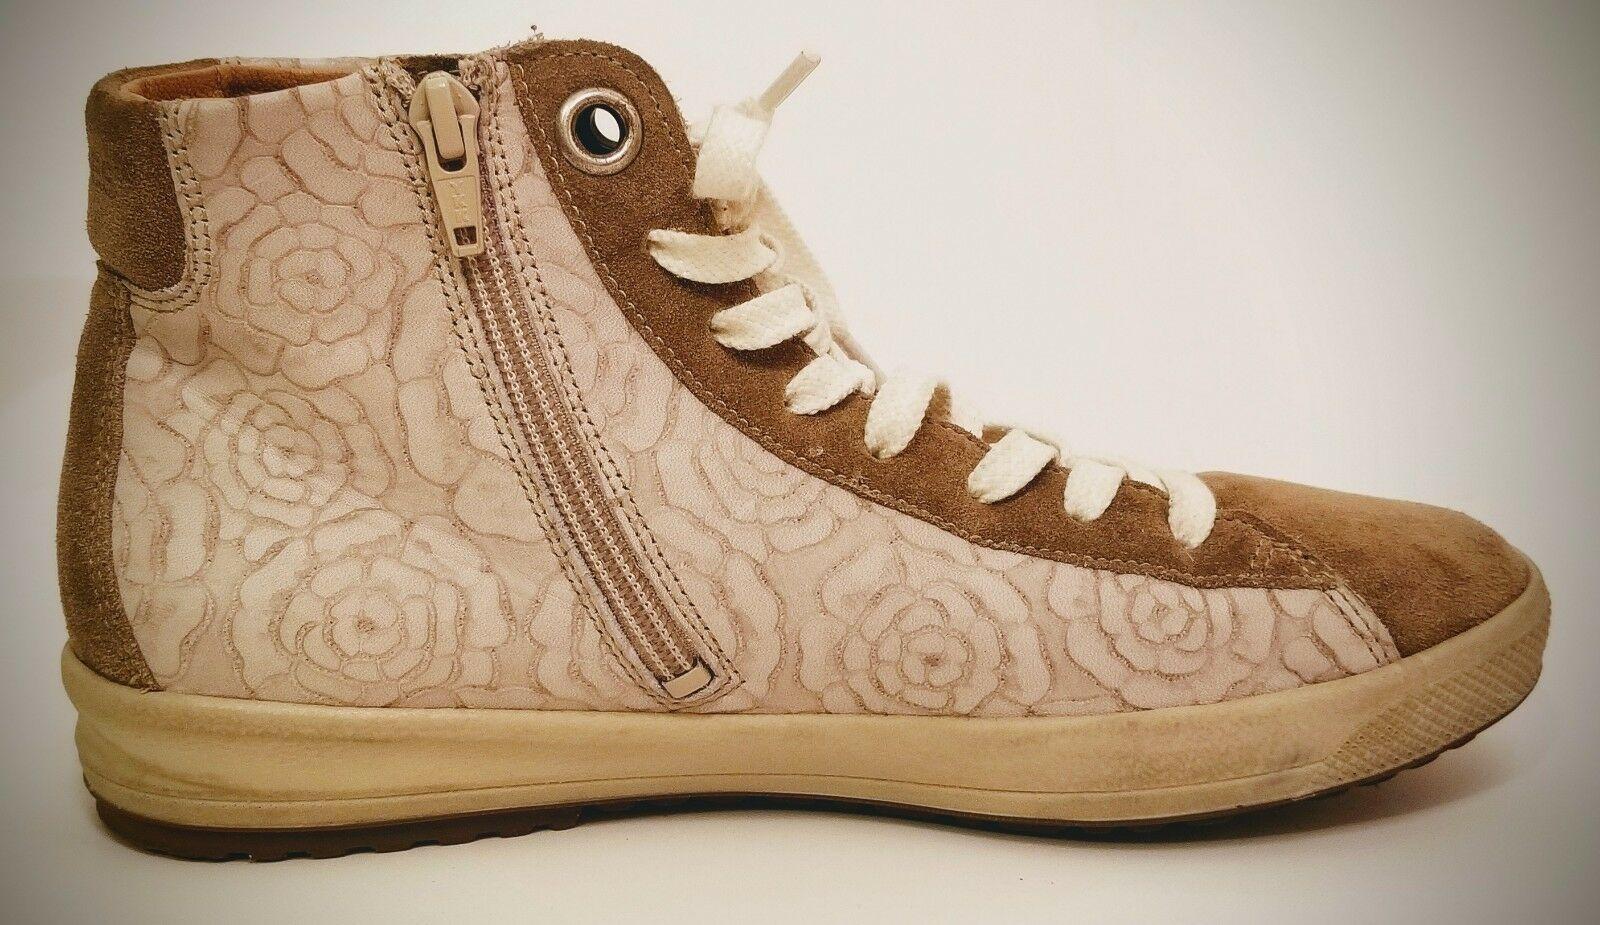 Hartjes Hightop Sneakers Women's 5.5 Model 46372 gold Suede Suede Suede and Peony Cut Leathe e3863b